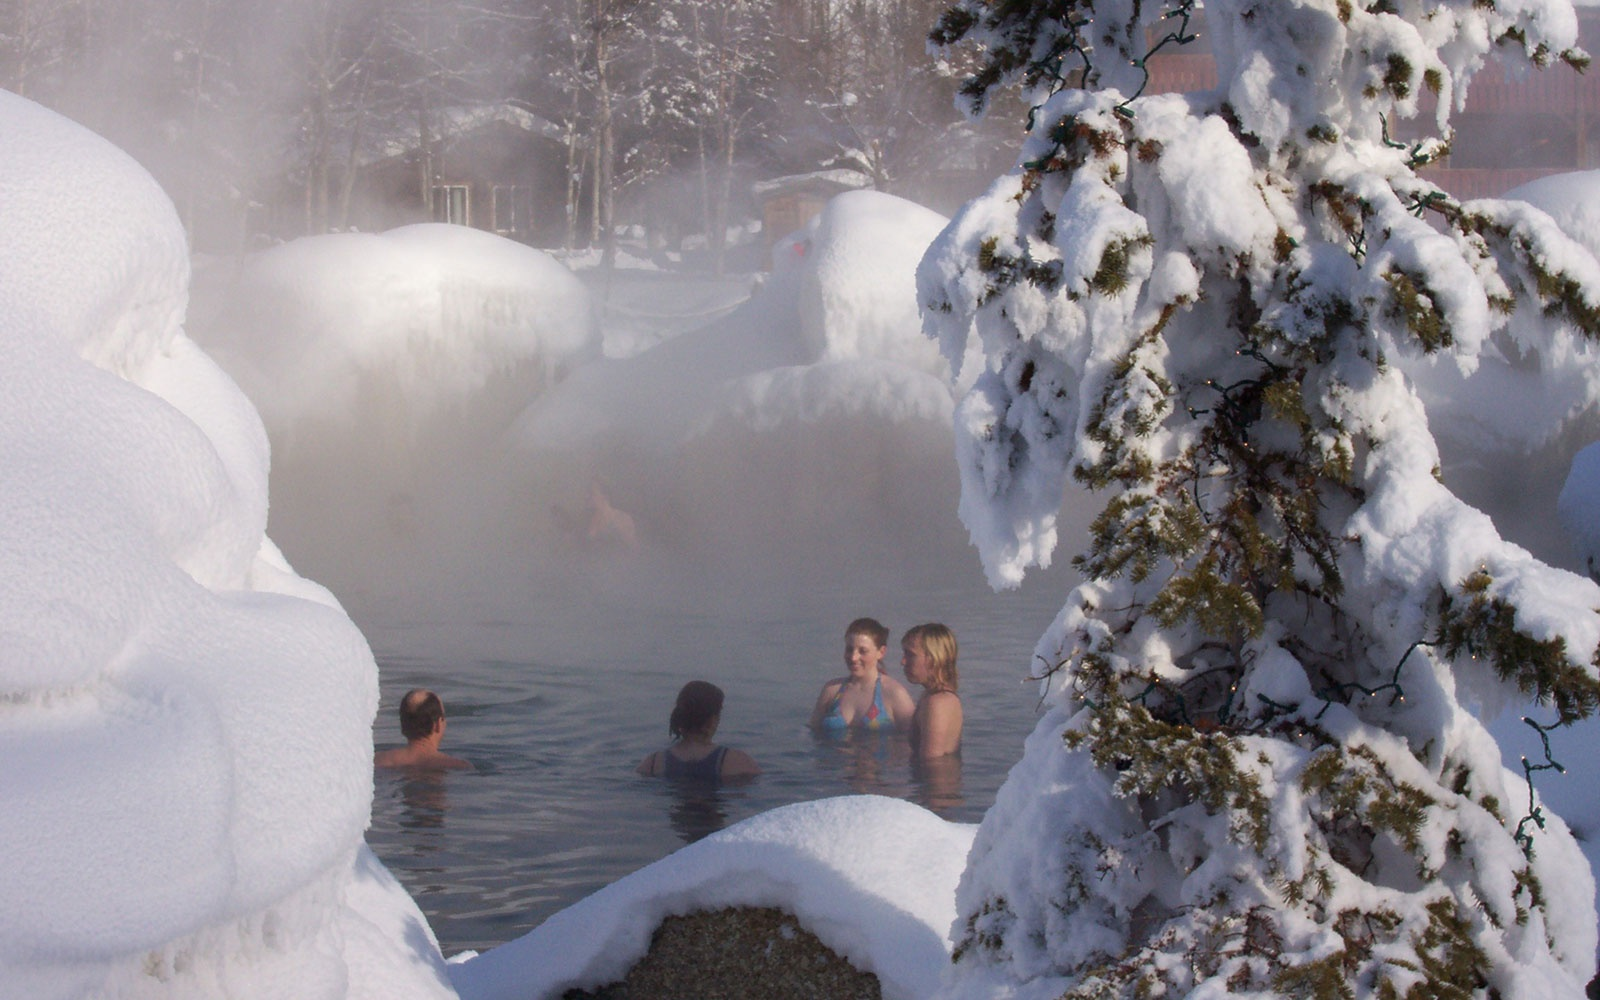 swimming in winter at Chena Hot Springs in Fairbanks, AK